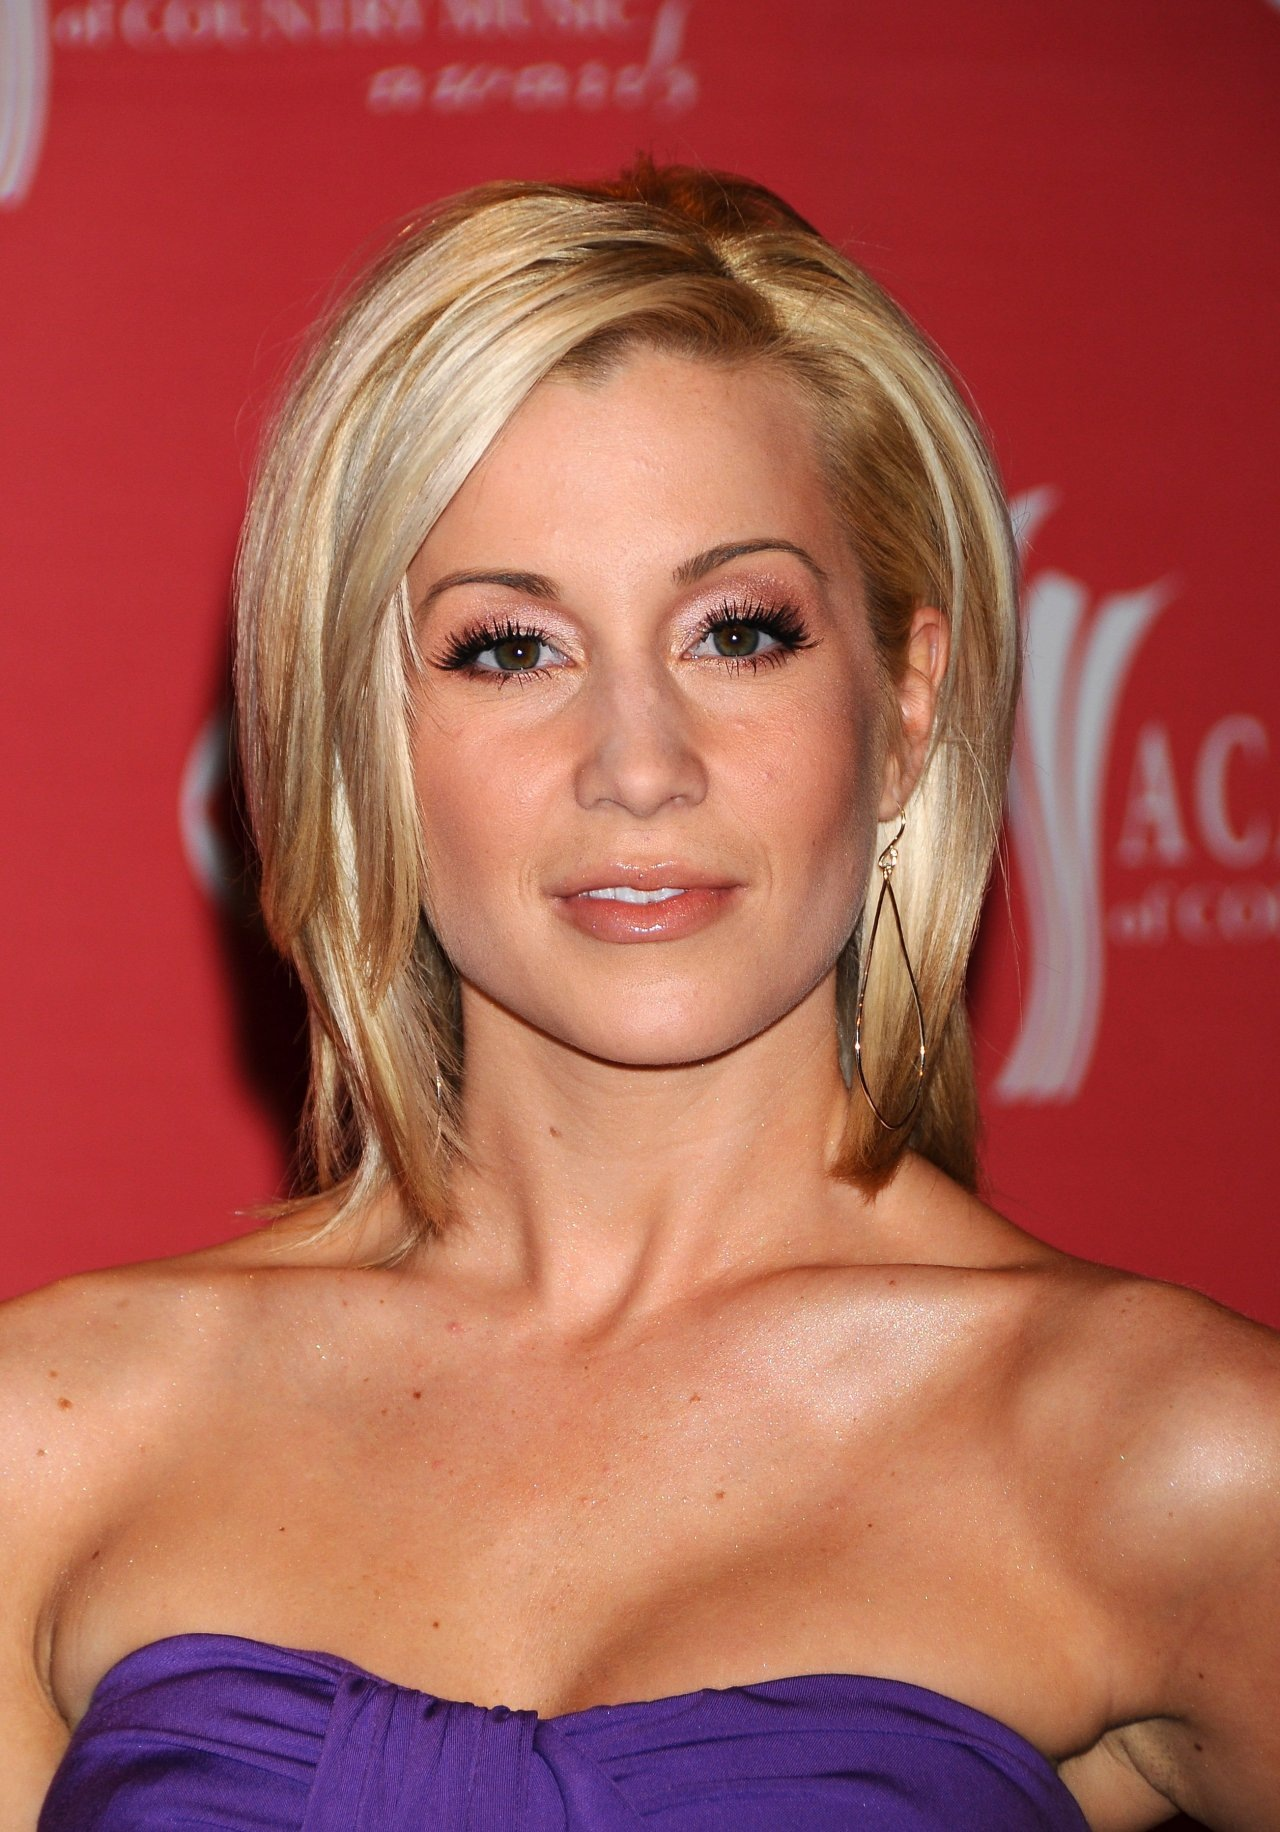 Kellie Pickler photo #241280